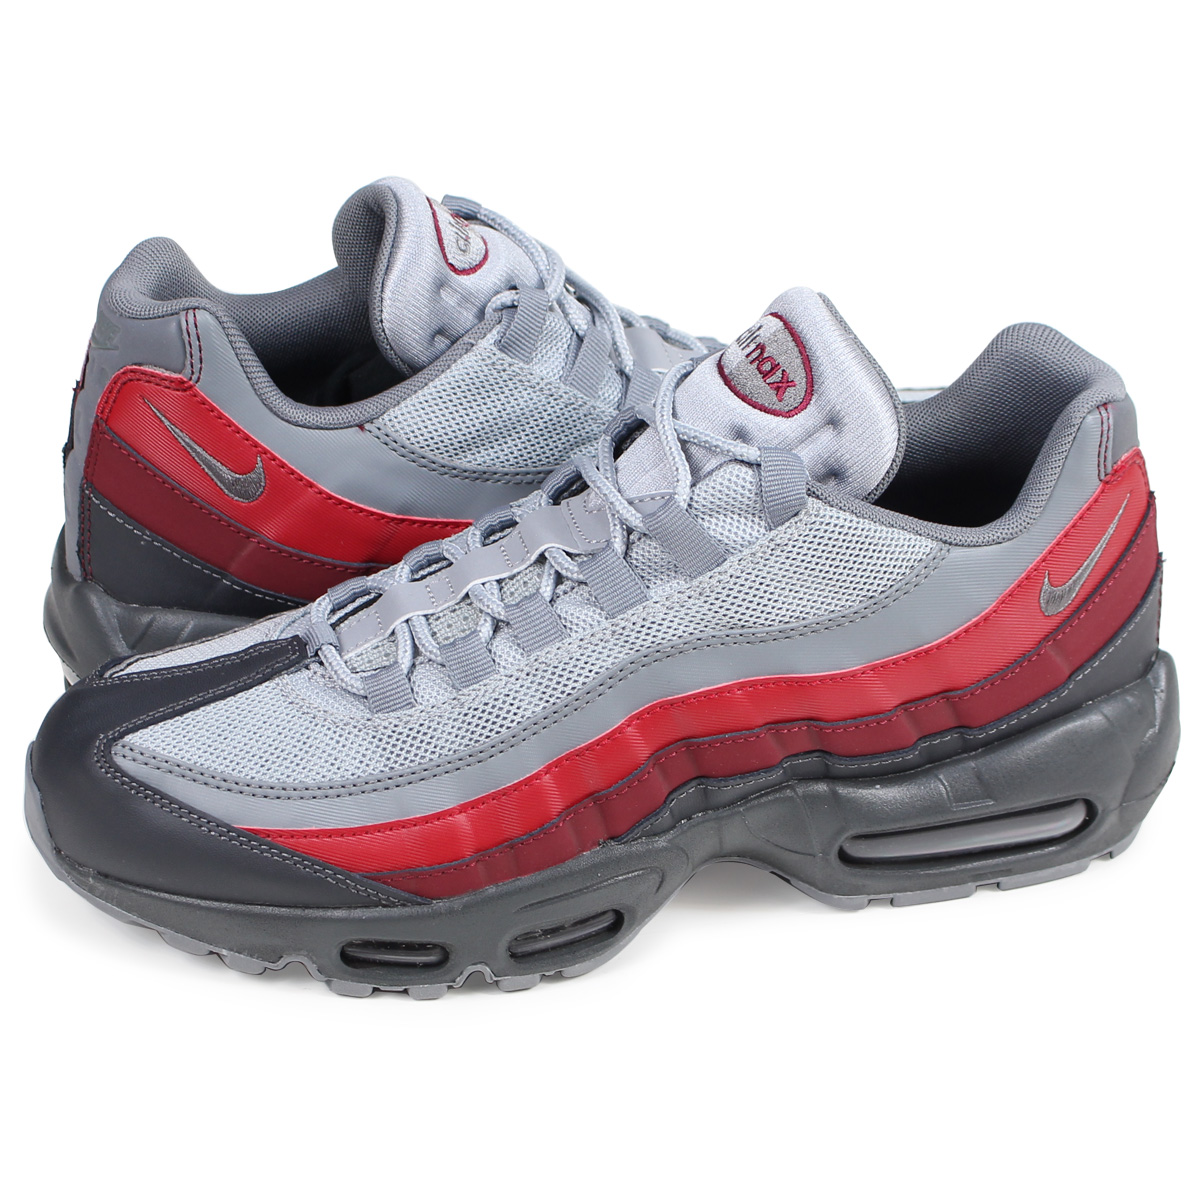 a234170c5d99 Whats up Sports  NIKE AIR MAX 95 ESSENTIAL Kie Ney AMAX 95 essential ...